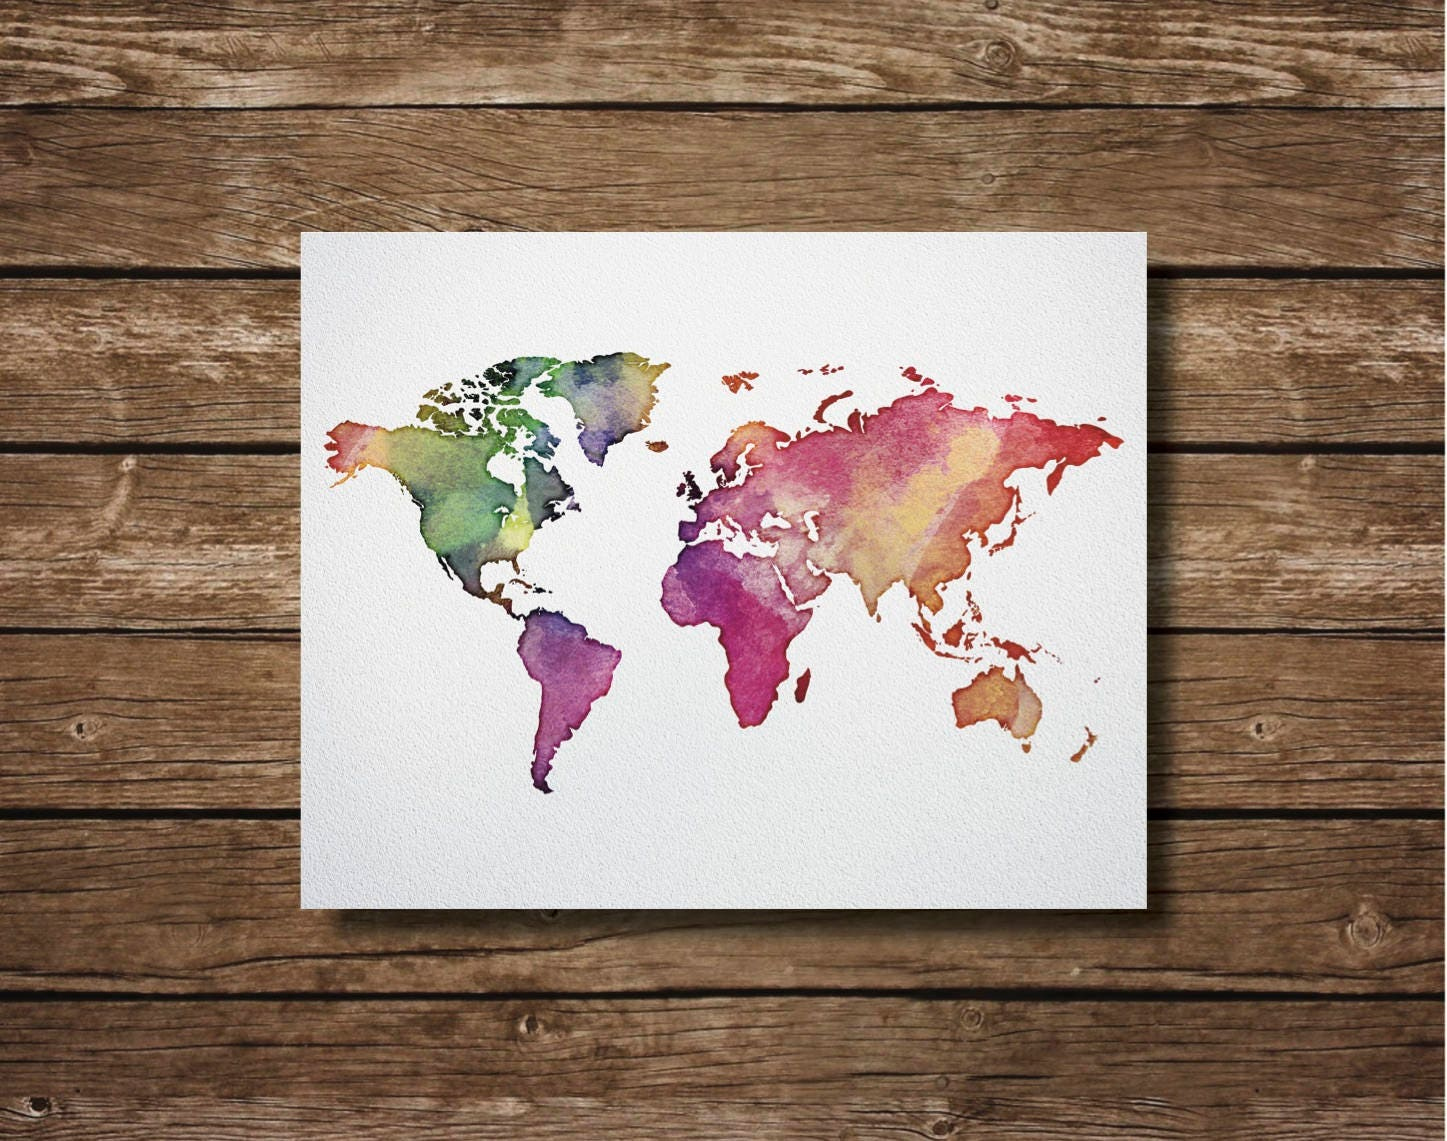 World map print explore print world map poster travel map world map print explore print world map poster travel map watercolor world gumiabroncs